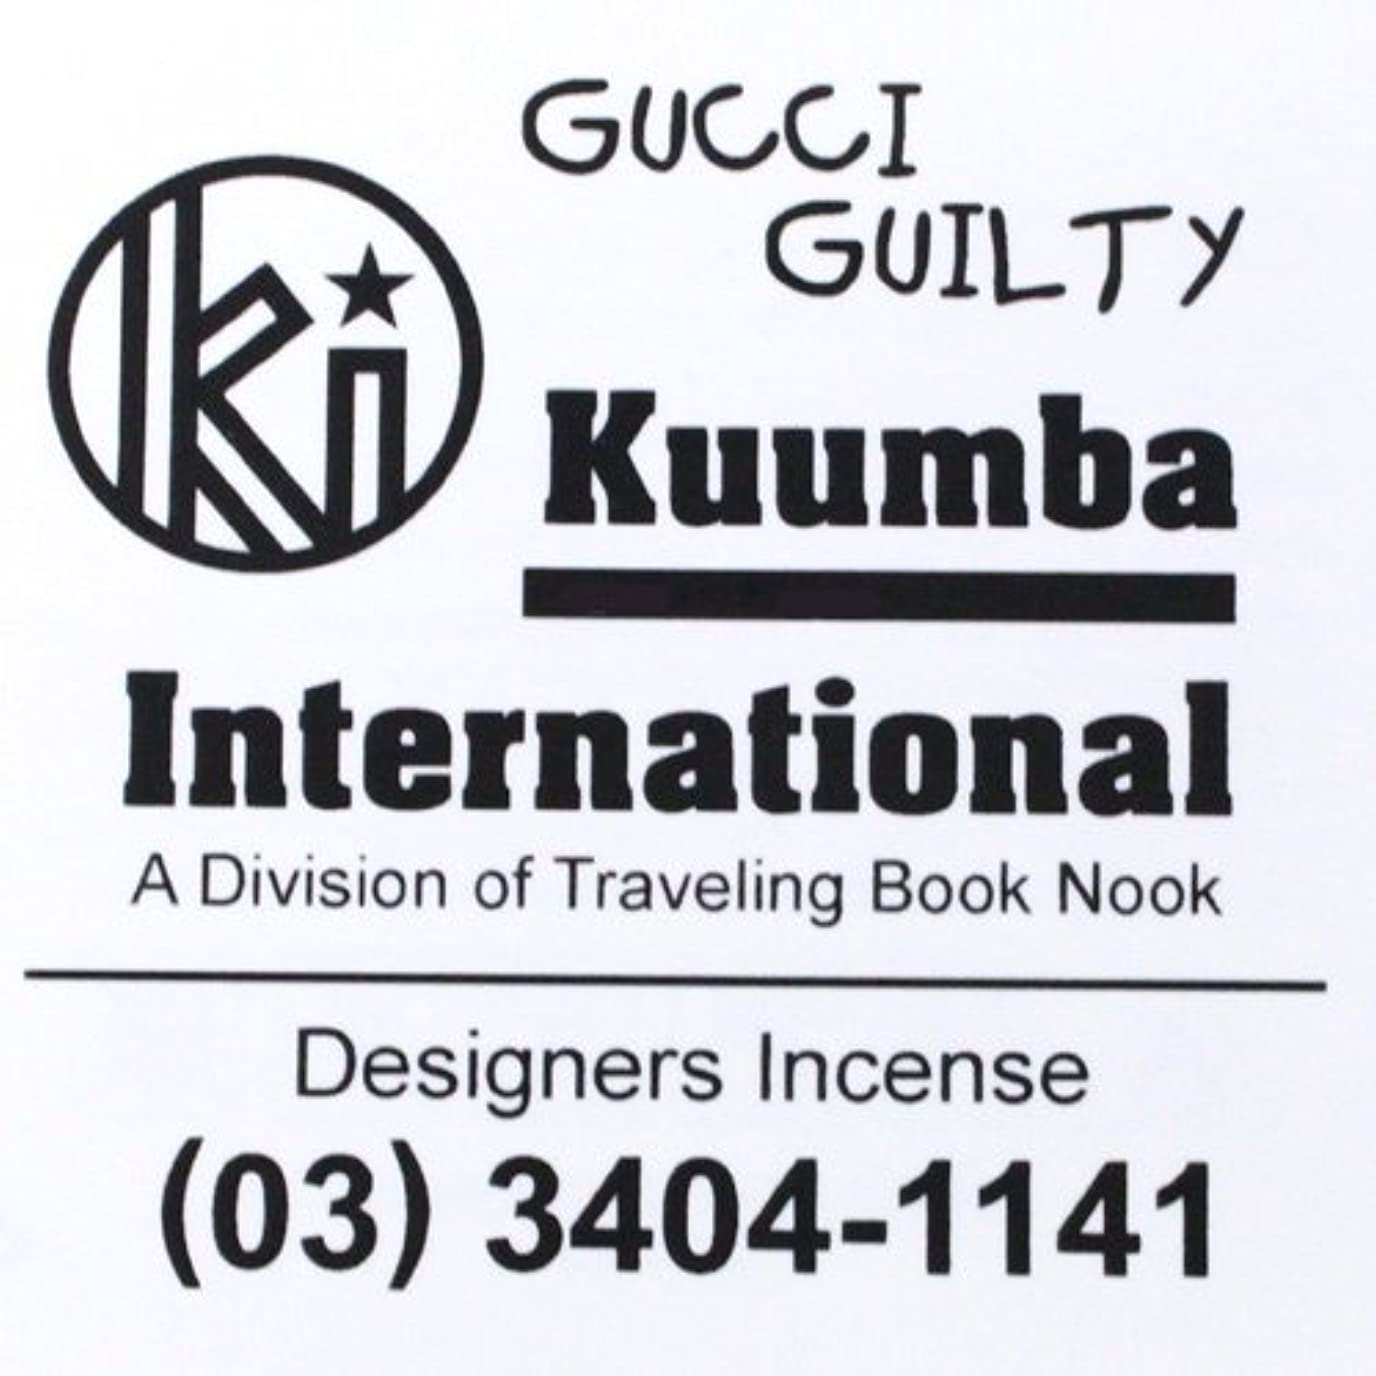 規範協力反対にKUUMBA (クンバ)『incense』(GUCCI GUILTY) (Regular size)